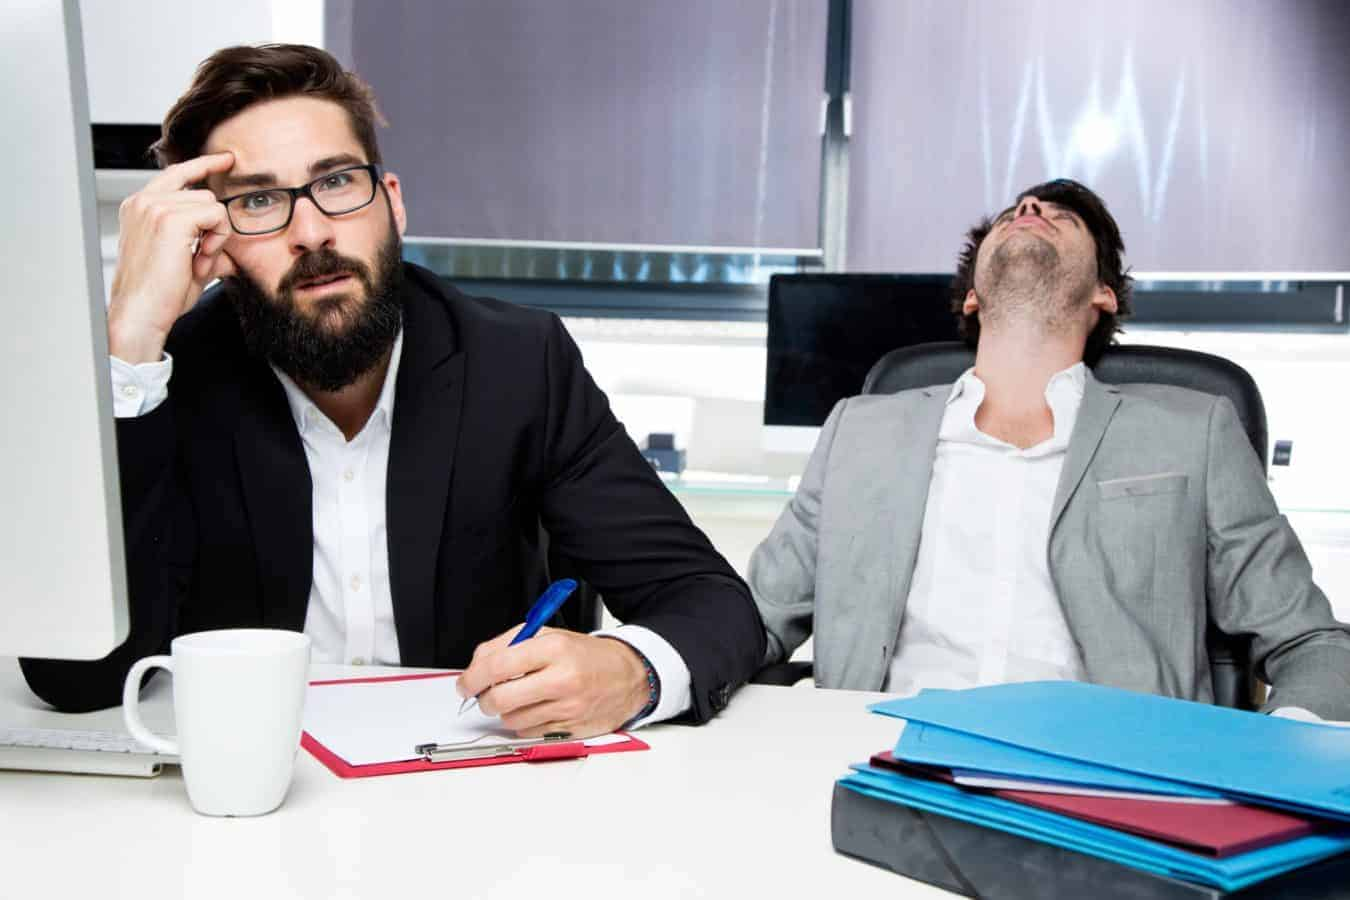 What to Do if You Don't Like Your Coworker